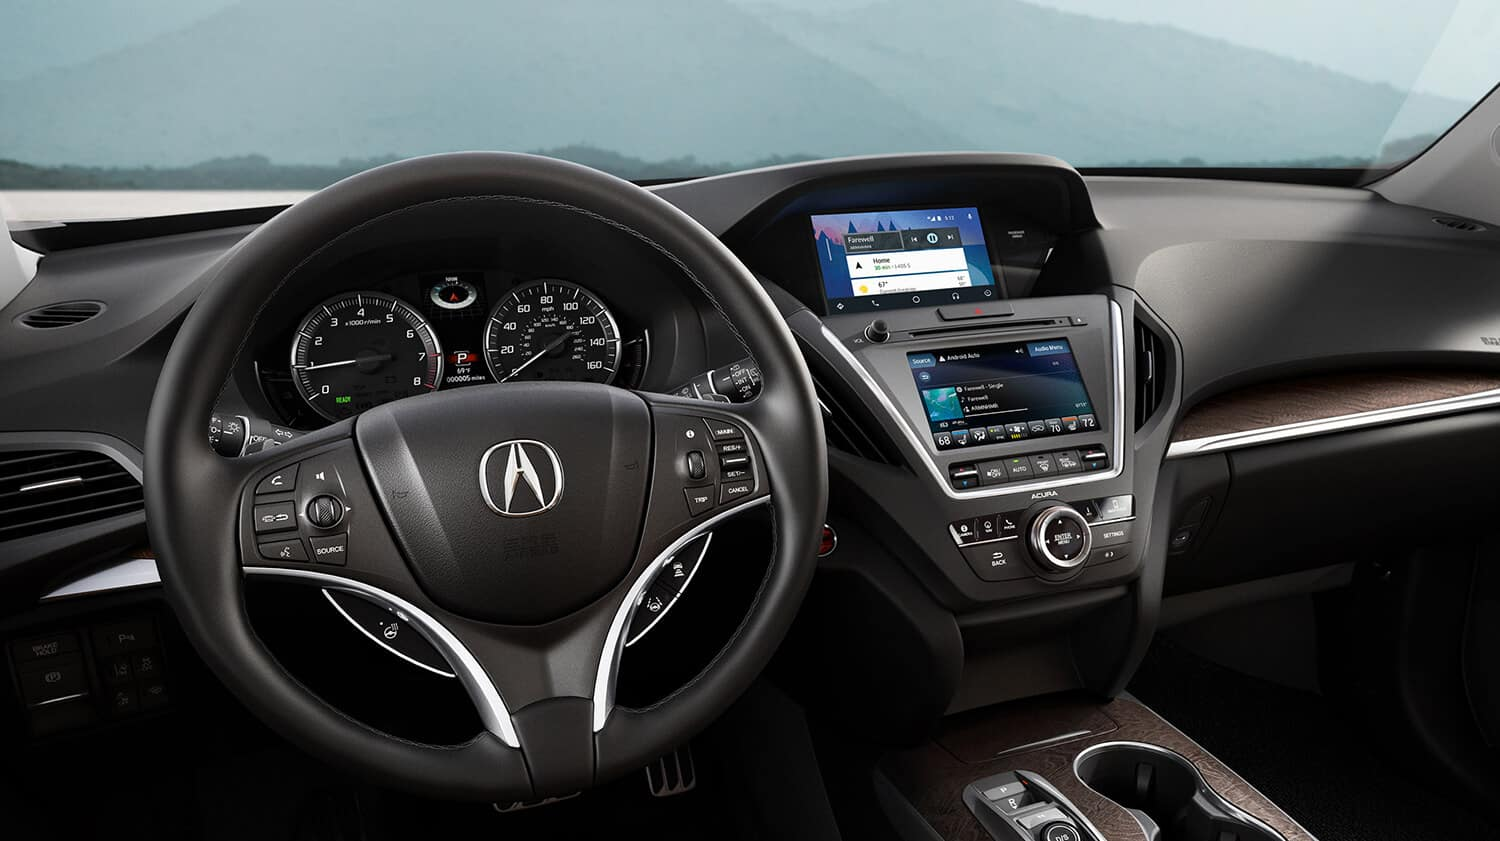 2019 Acura MDX Interior Cockpit Overview